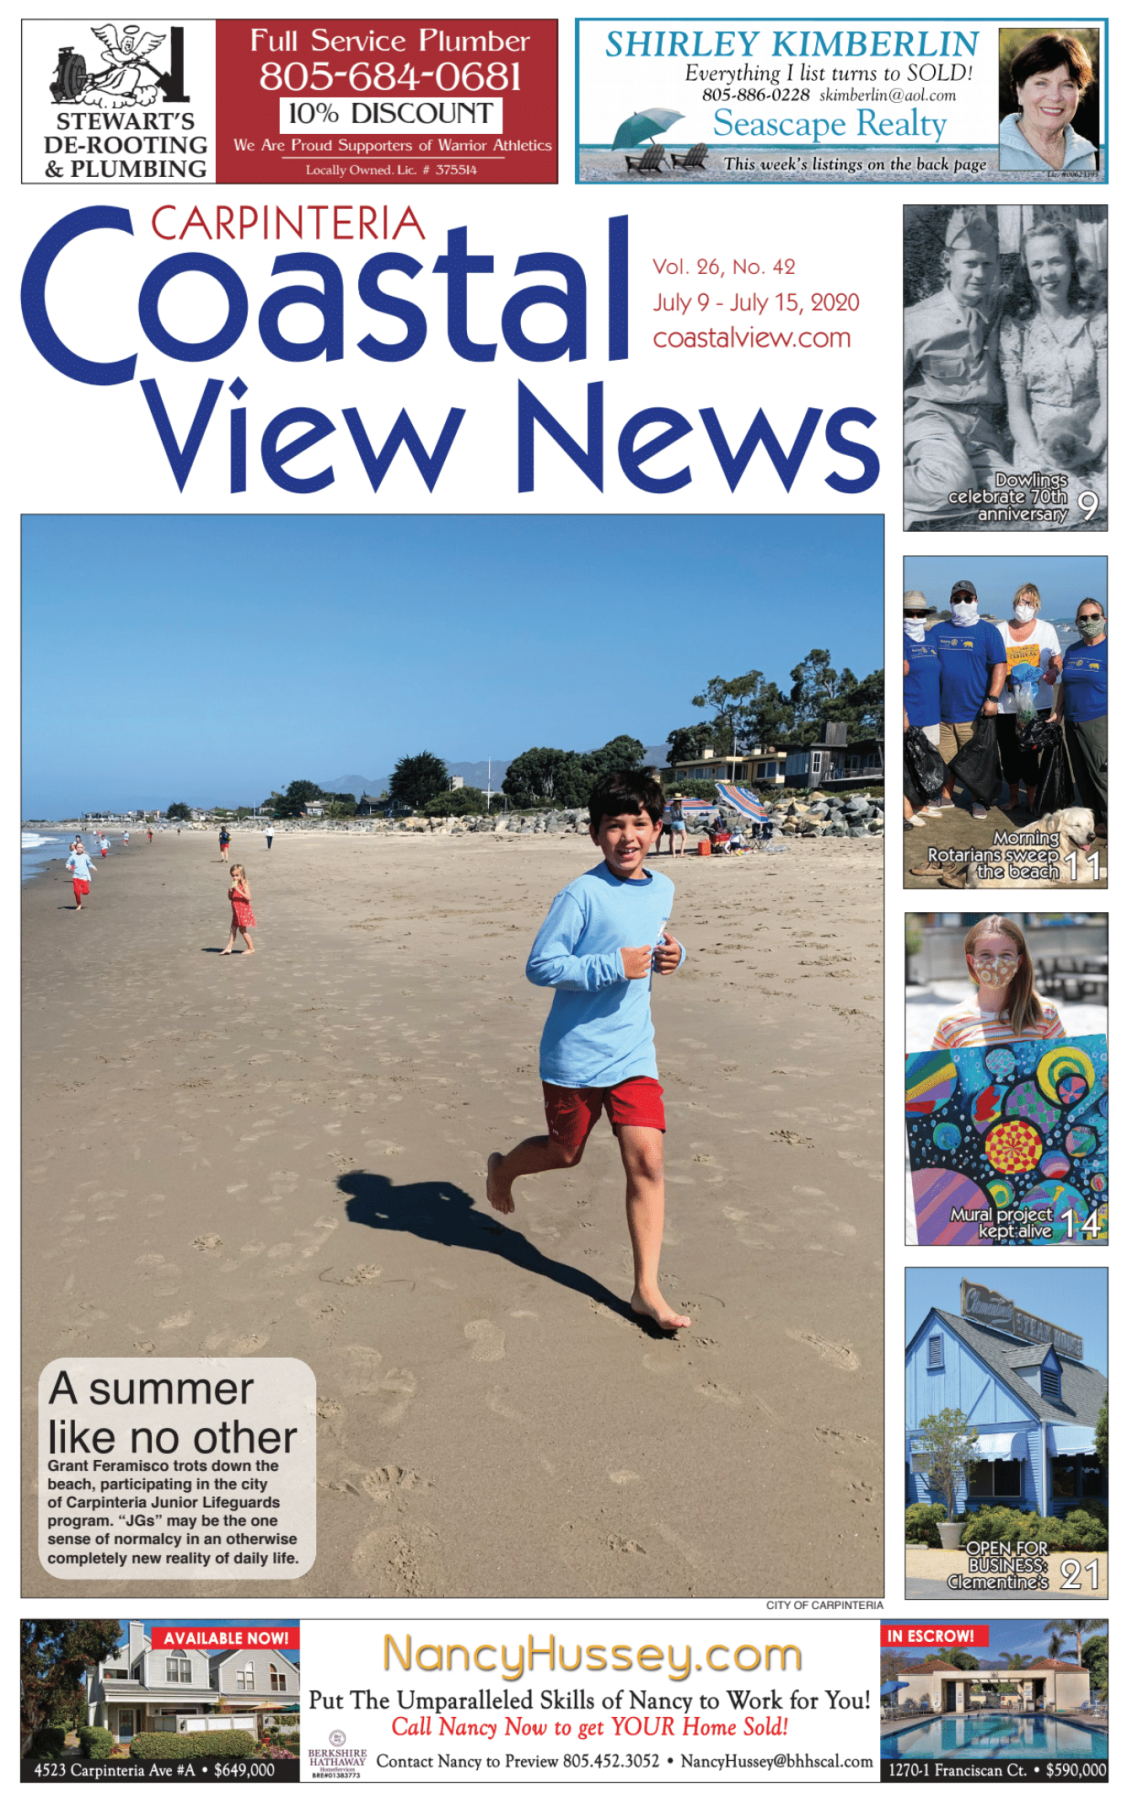 Coastal View News • July 9, 2020